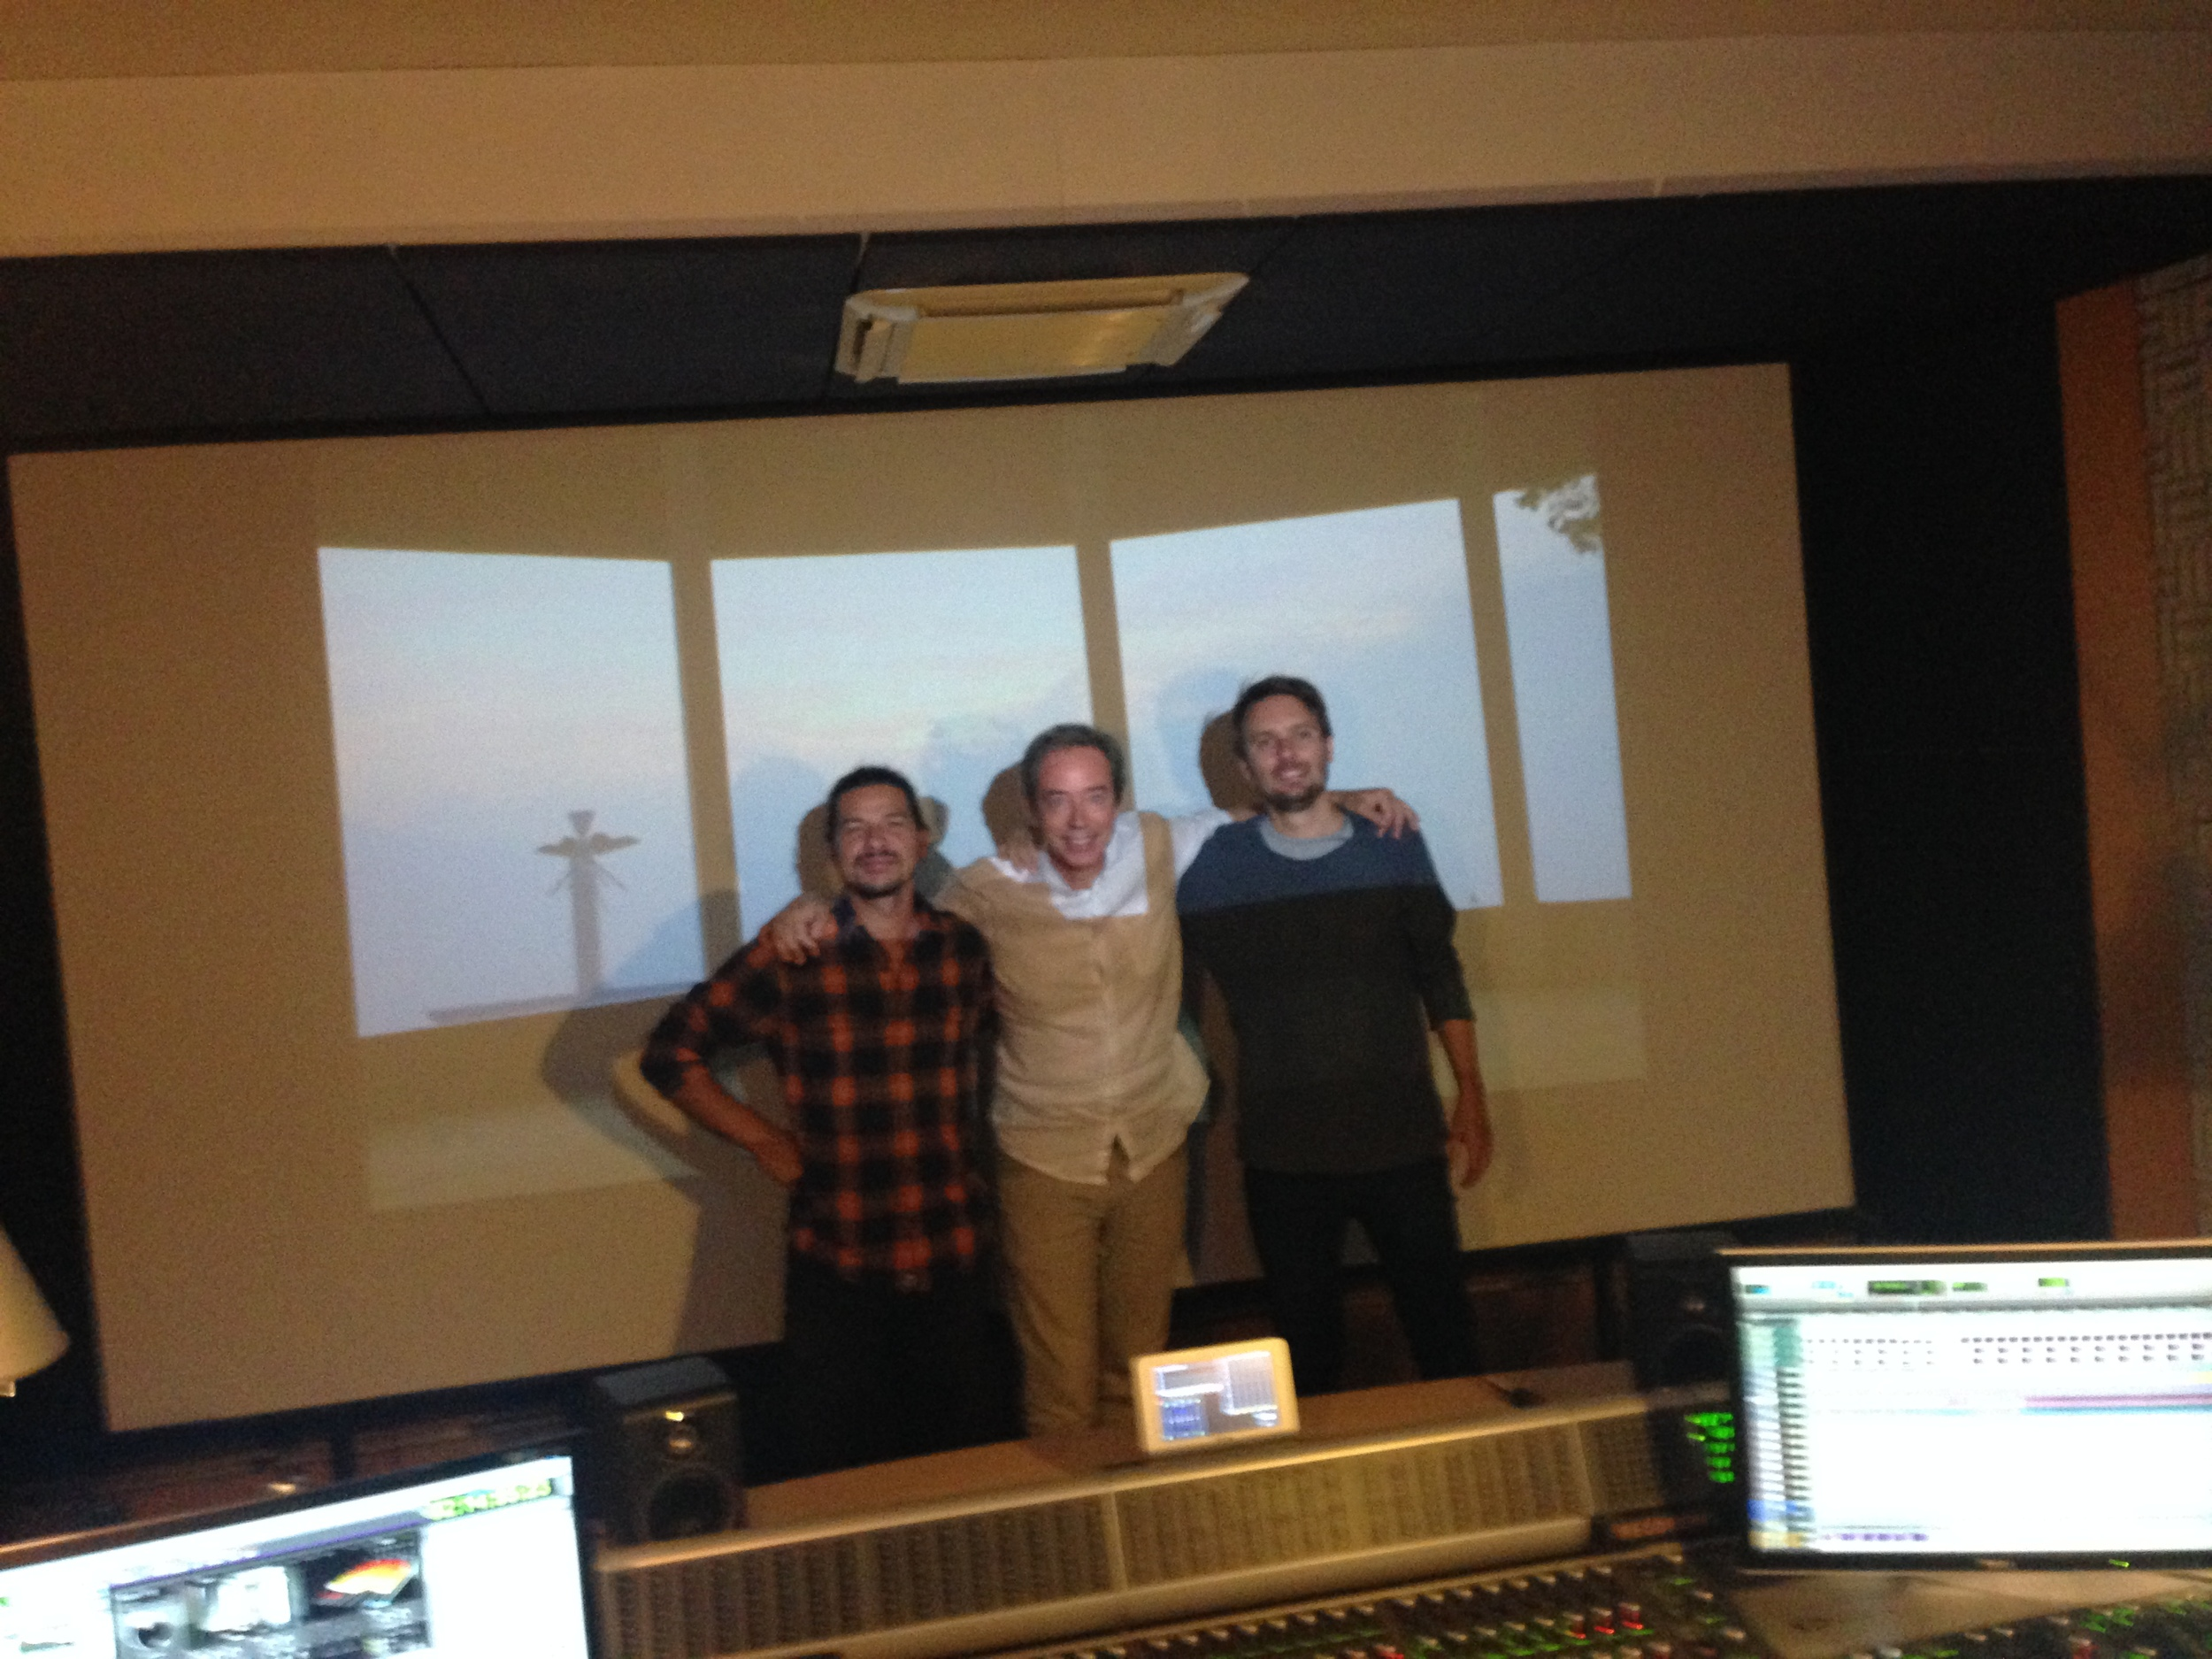 Alejandro Castillo, Denis Séchaud and Jean-Cosme at the end of the sound mixing session at Masé Studios.